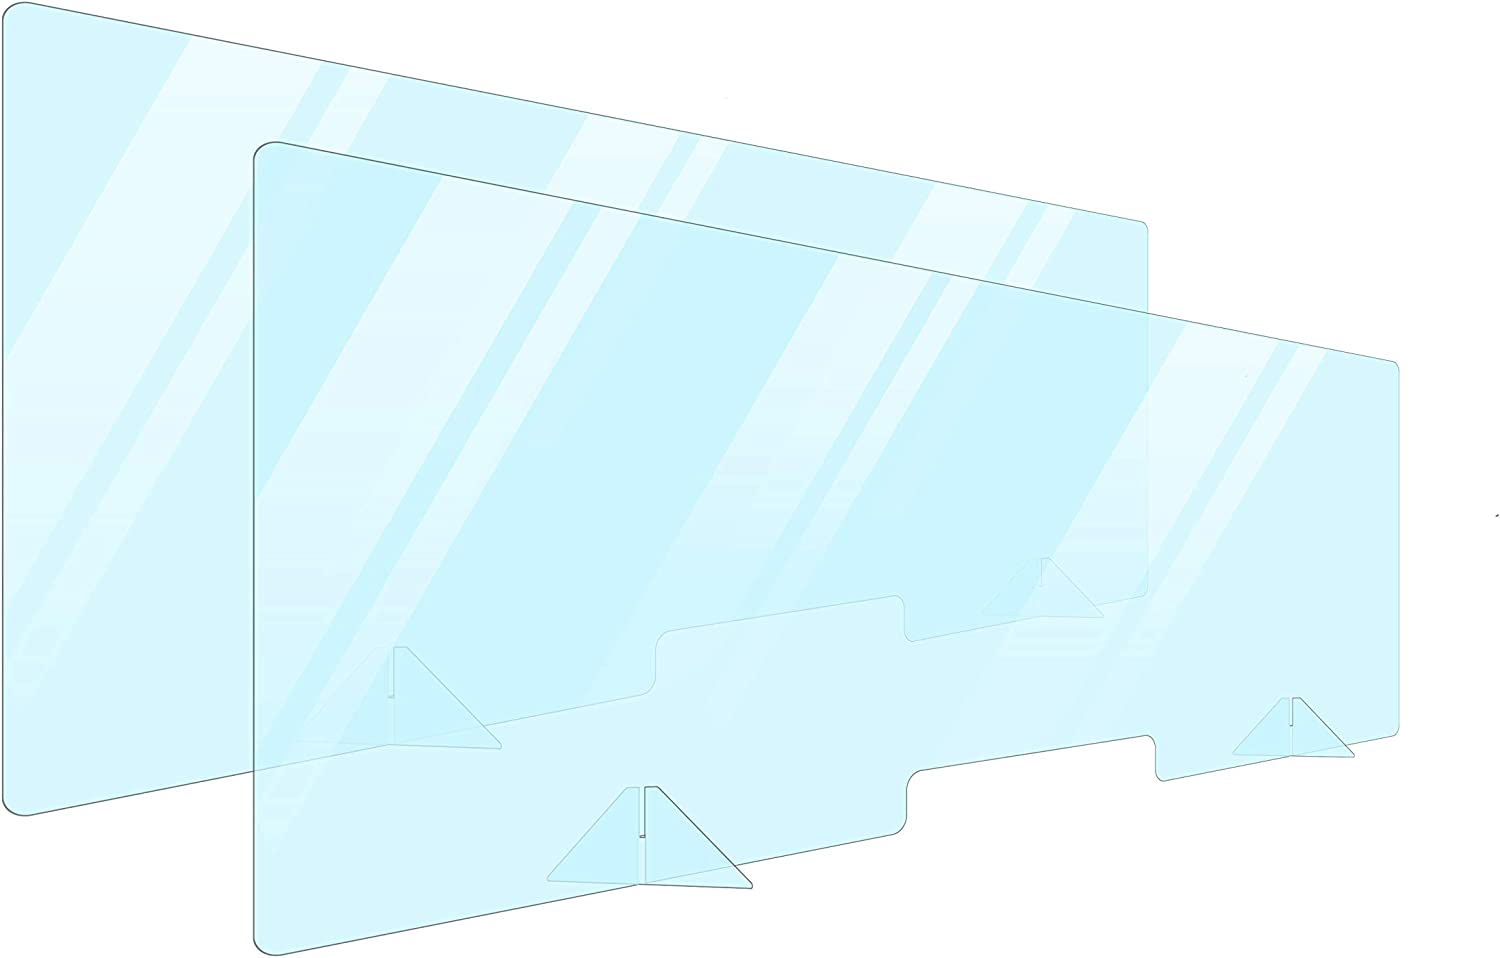 2 Pack Plexiglass Barrier For Counter Plexi Glass Screen 60x24 Desk Shields For Germ Protection Sneeze Guard Shield For Counter Plexiglass Divider For Desk Sneeze Guards For Countertops Multiple Sizes